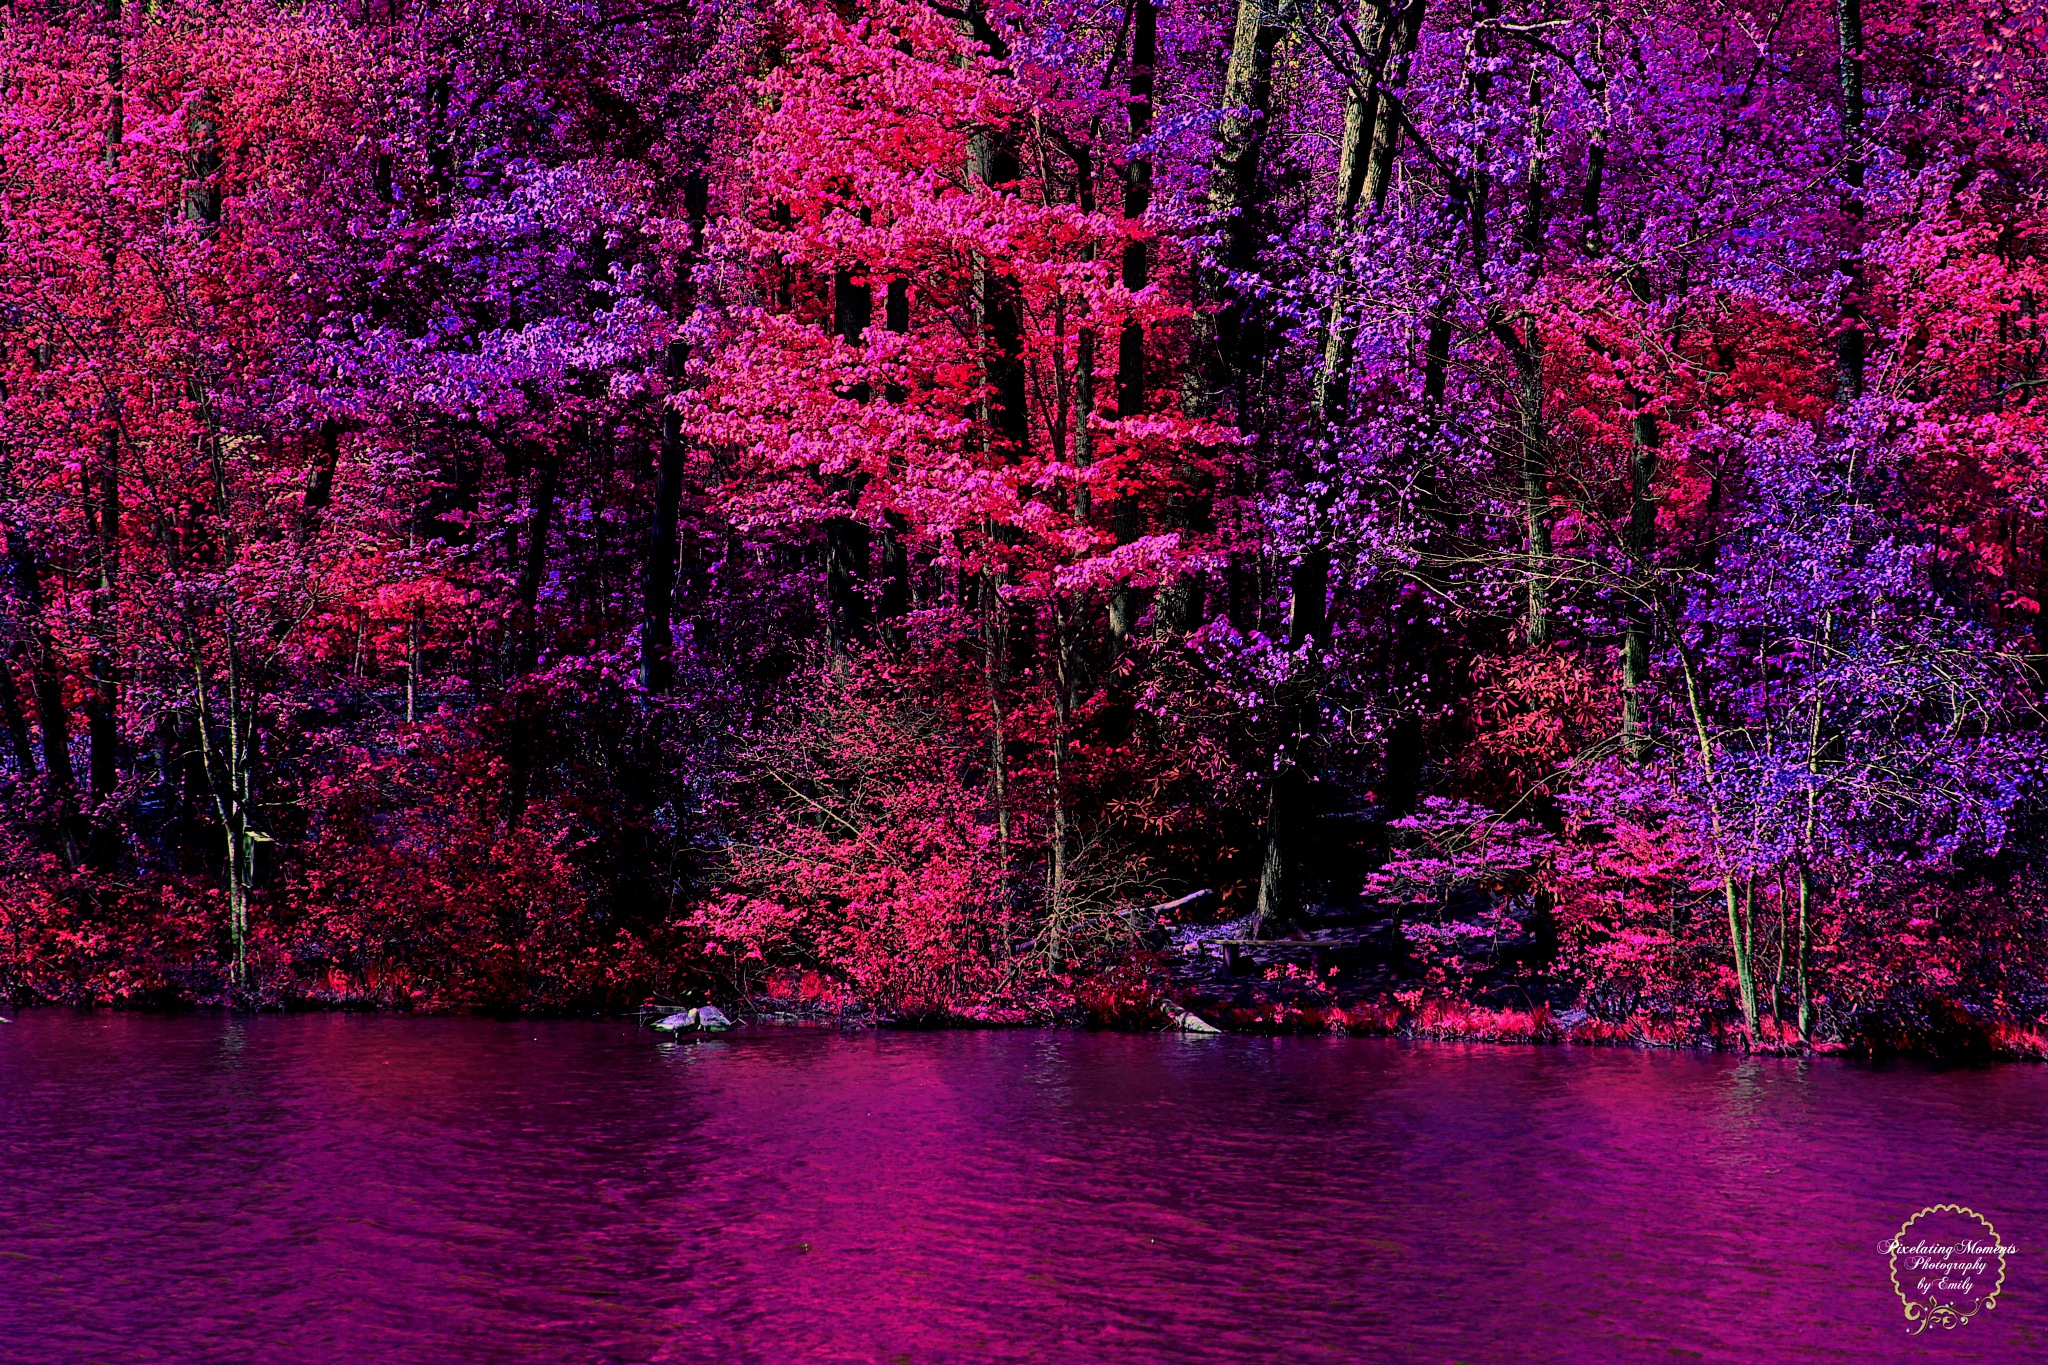 Pink and Purple Dreams by Emily Grant